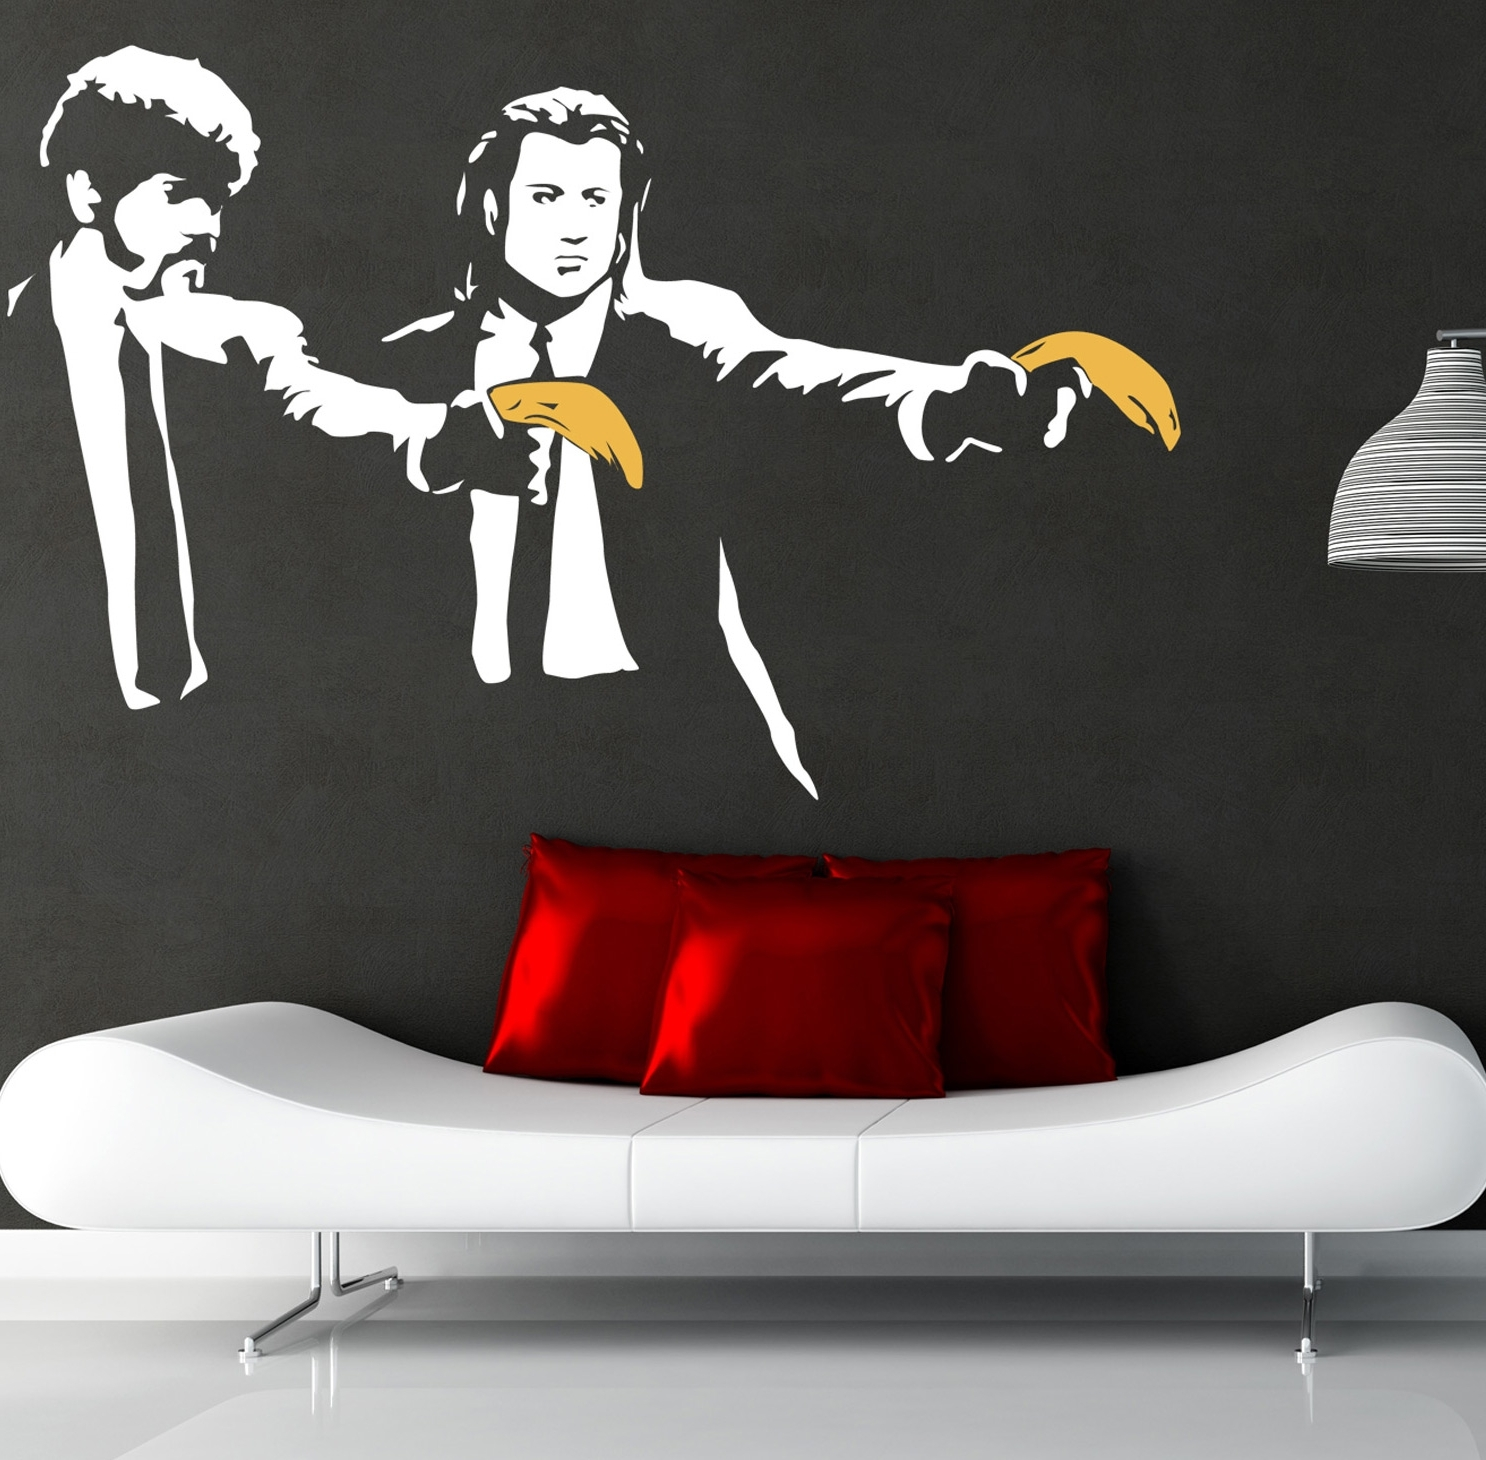 Most Recent Street Wall Art Decals Throughout Wall Art Decor: Graffiti Street Banksy Wall Art Artist Low Cost (View 5 of 15)